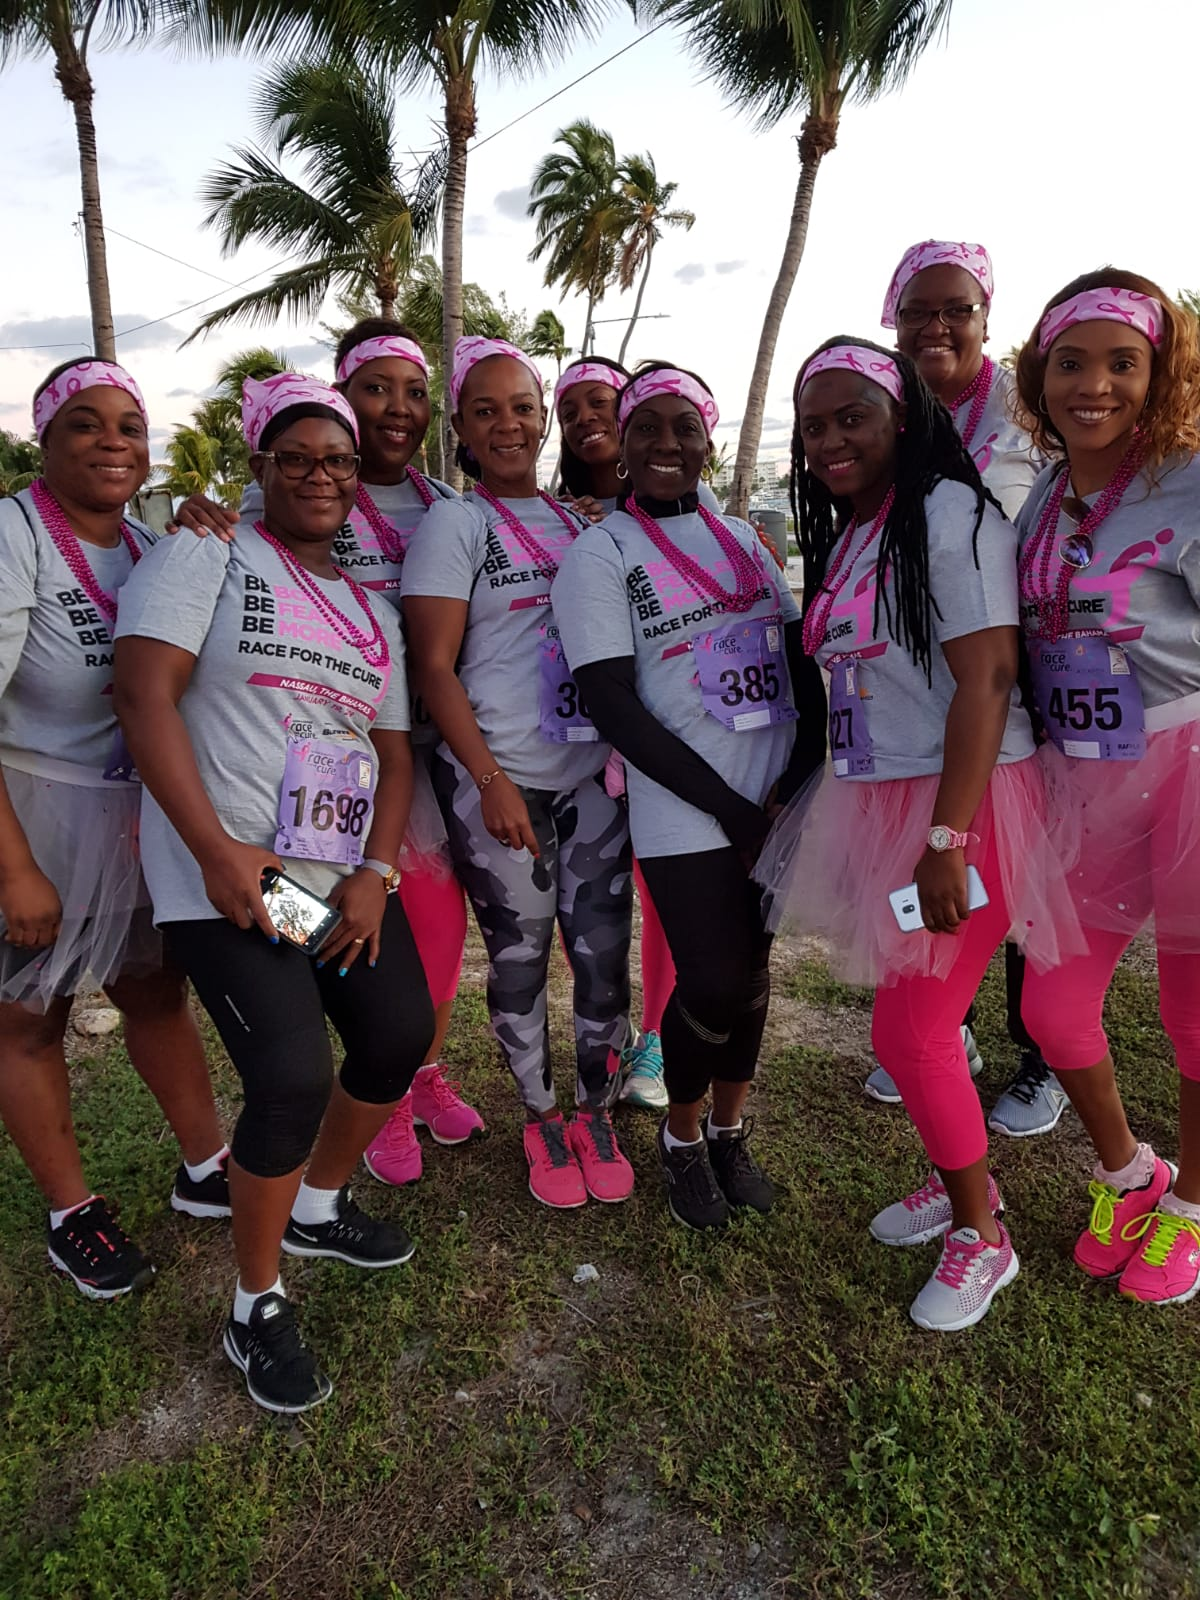 Strong support shown at Susan G. Komen Race for the Cure